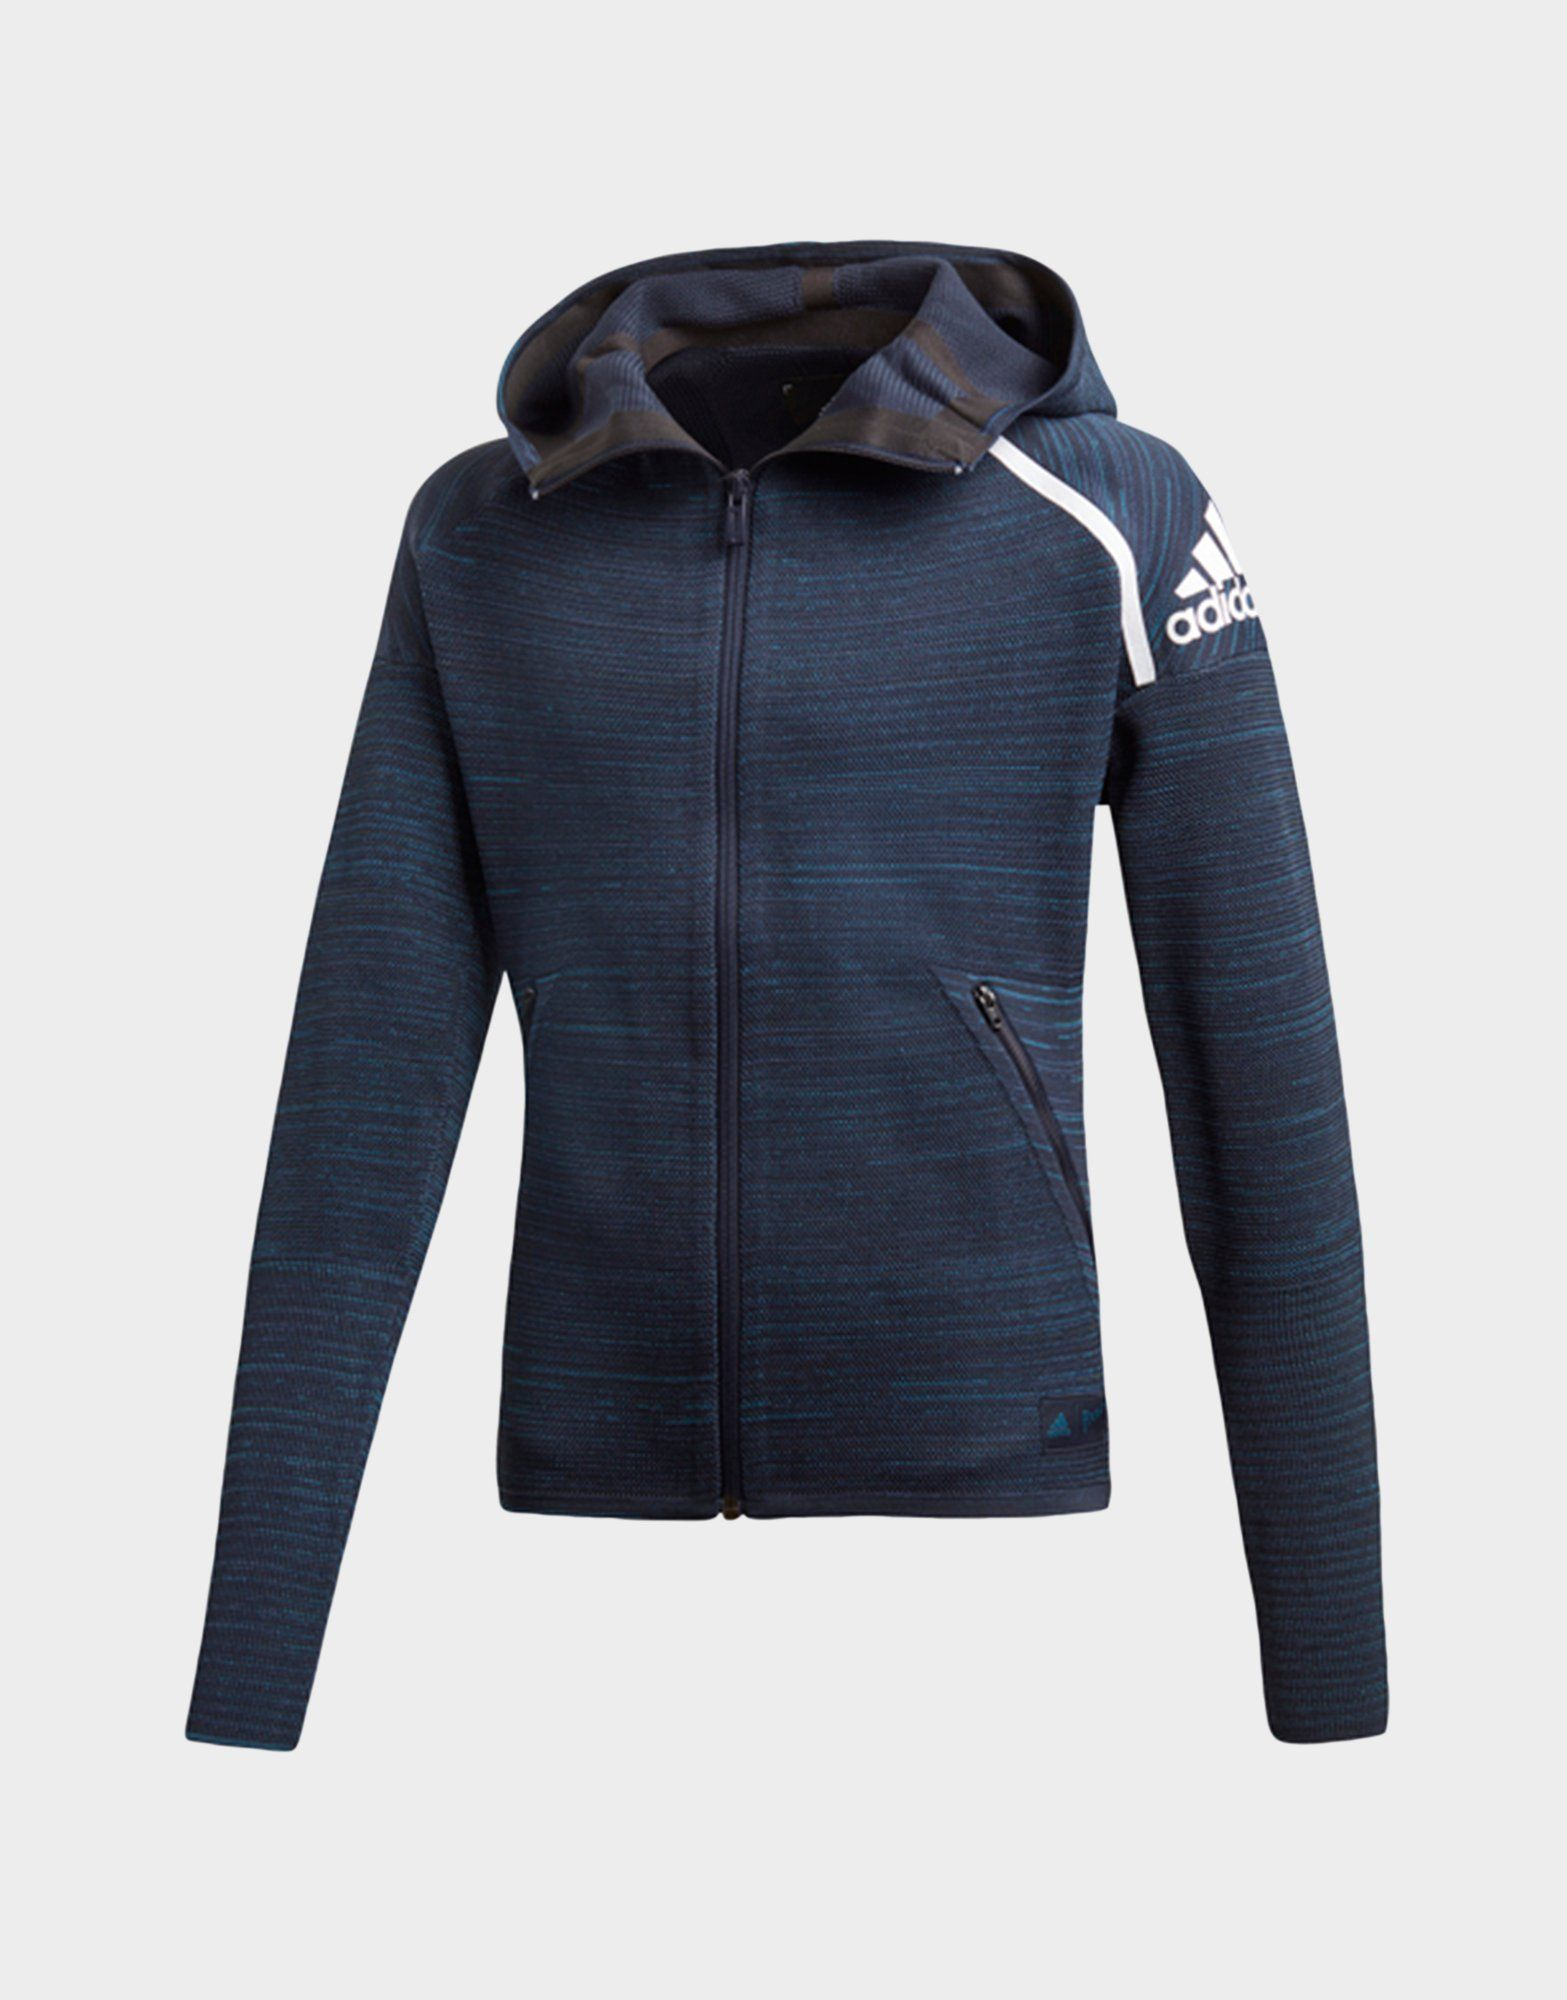 detailed look b70d3 dbbb5 ADIDAS Z.N.E. Parley Hoodie   JD Sports